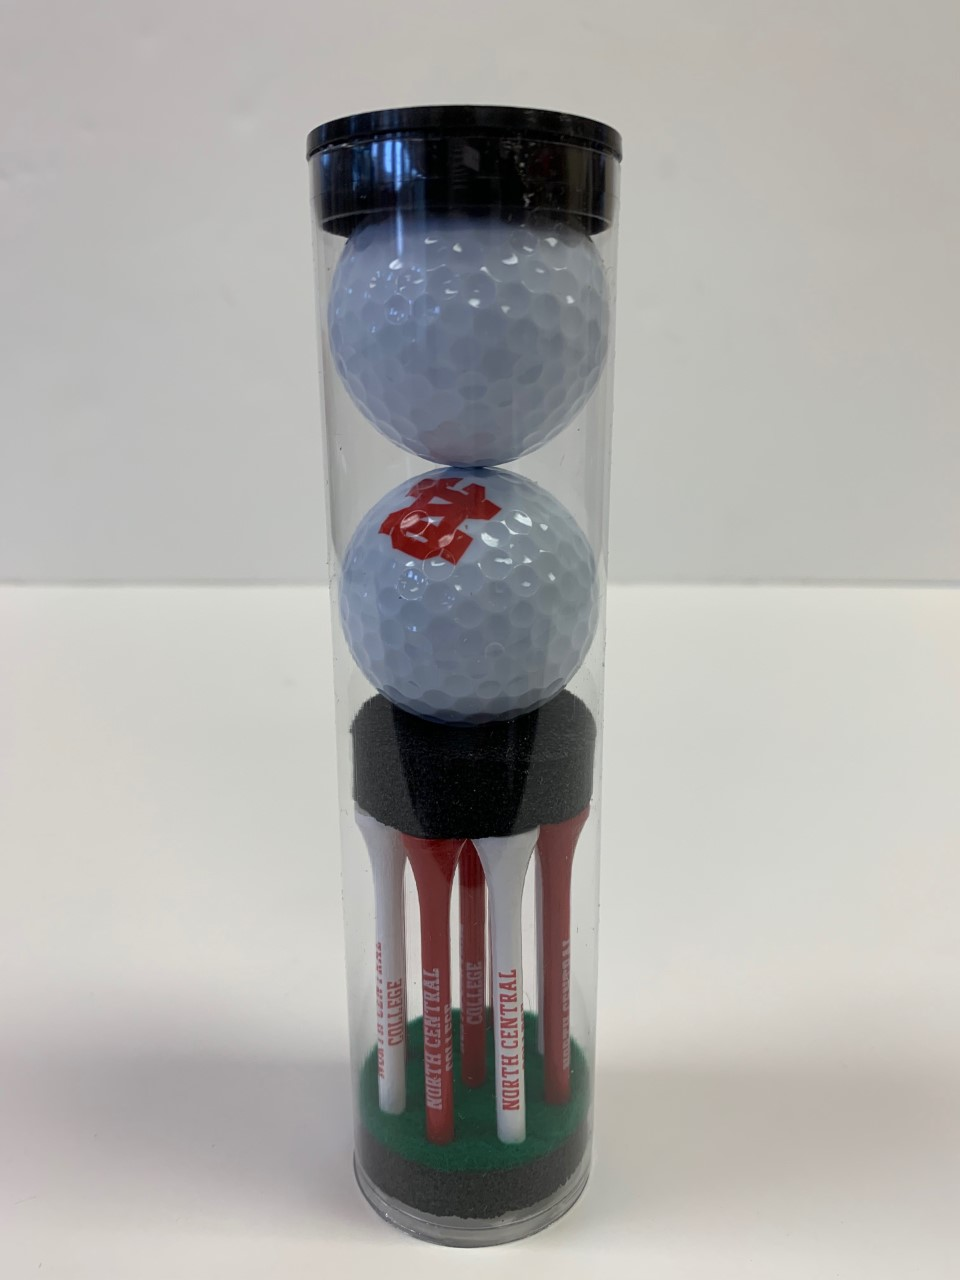 Image for the Golf Par Pack product